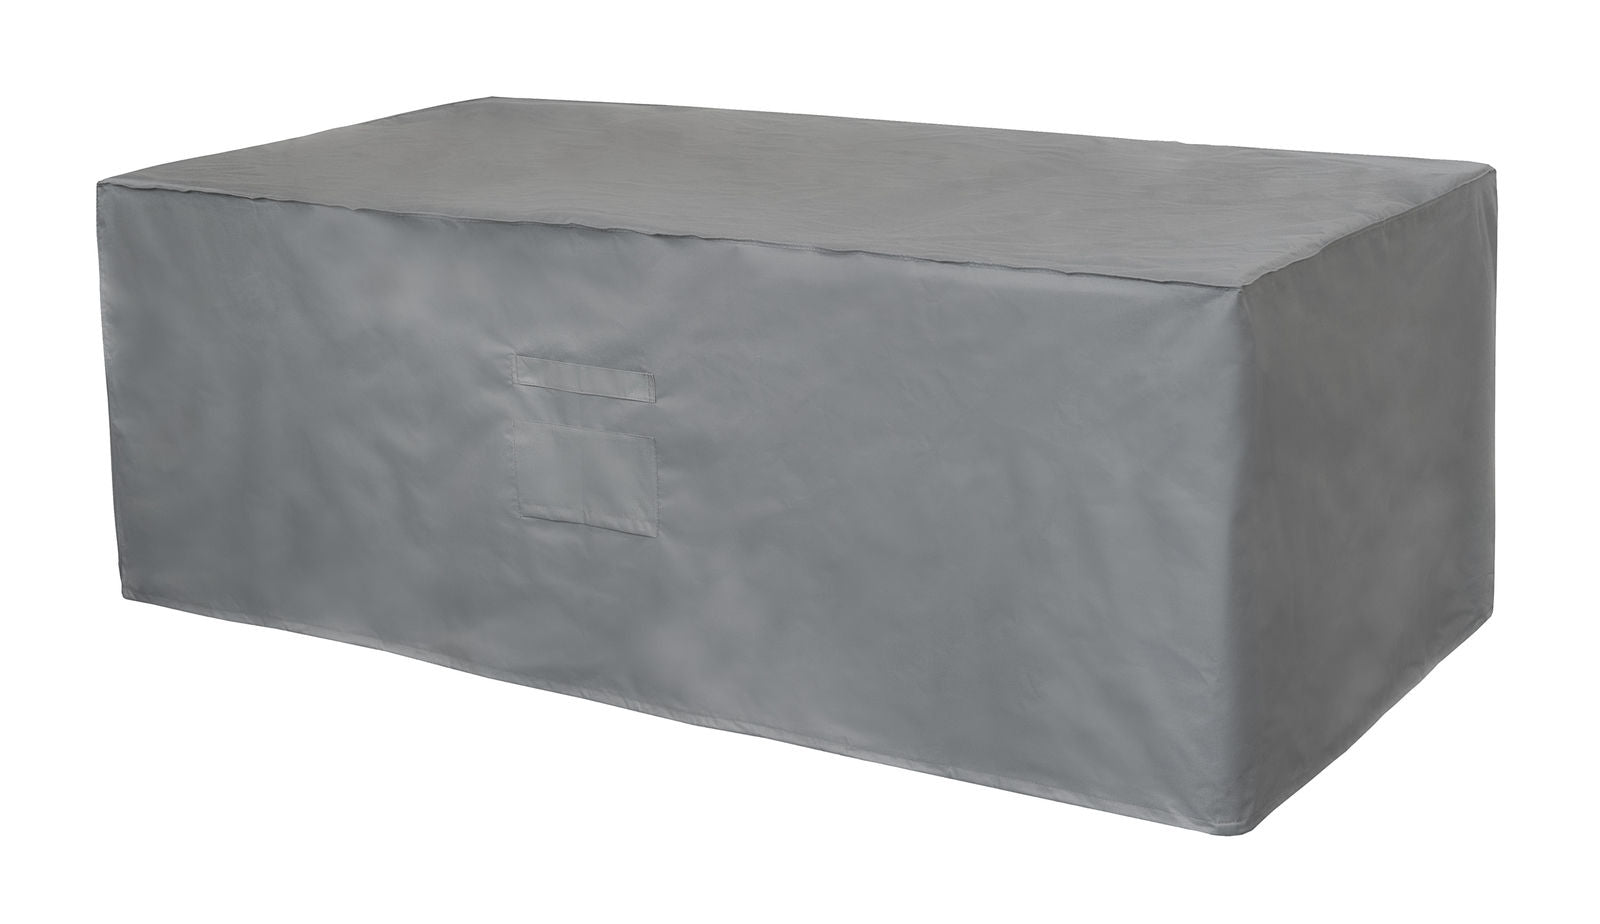 DELUXE RECTANGLE PATIO TABLE COVER